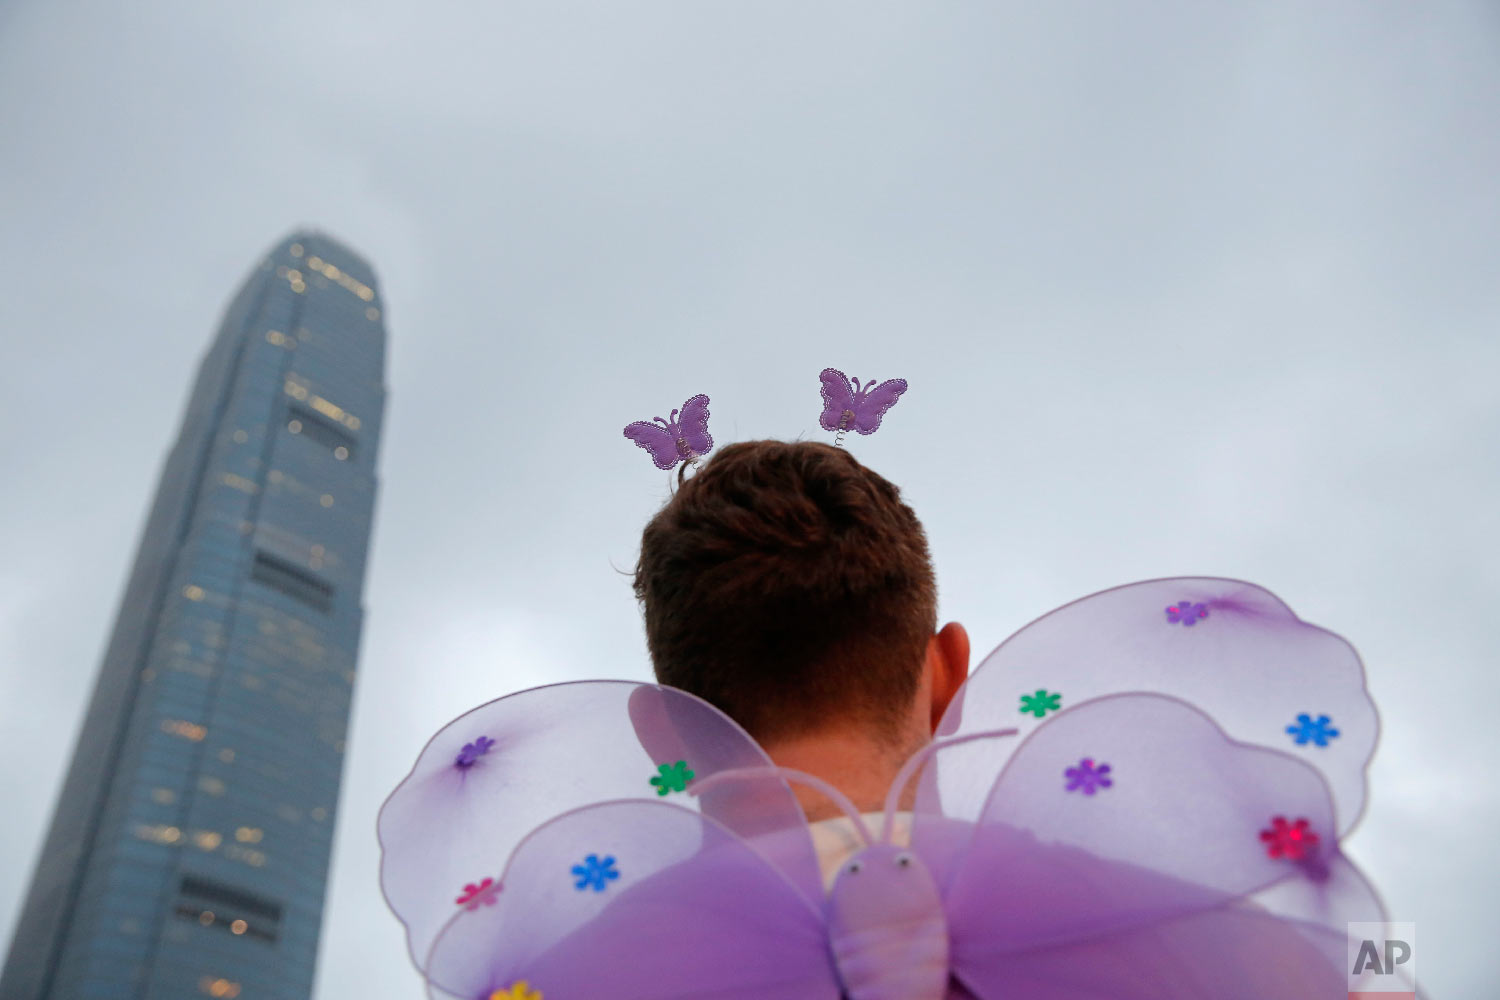 A participant attends the annual Pride Parade In Hong Kong, Saturday, Nov. 17, 2018. Thousands of supporters and members of the Lesbian, Gay, Bisexual, Transgender (LGBT) community in Hong Kong gathered on Saturday to participate in the annual Pride Parade. (AP Photo/Kin Cheung)